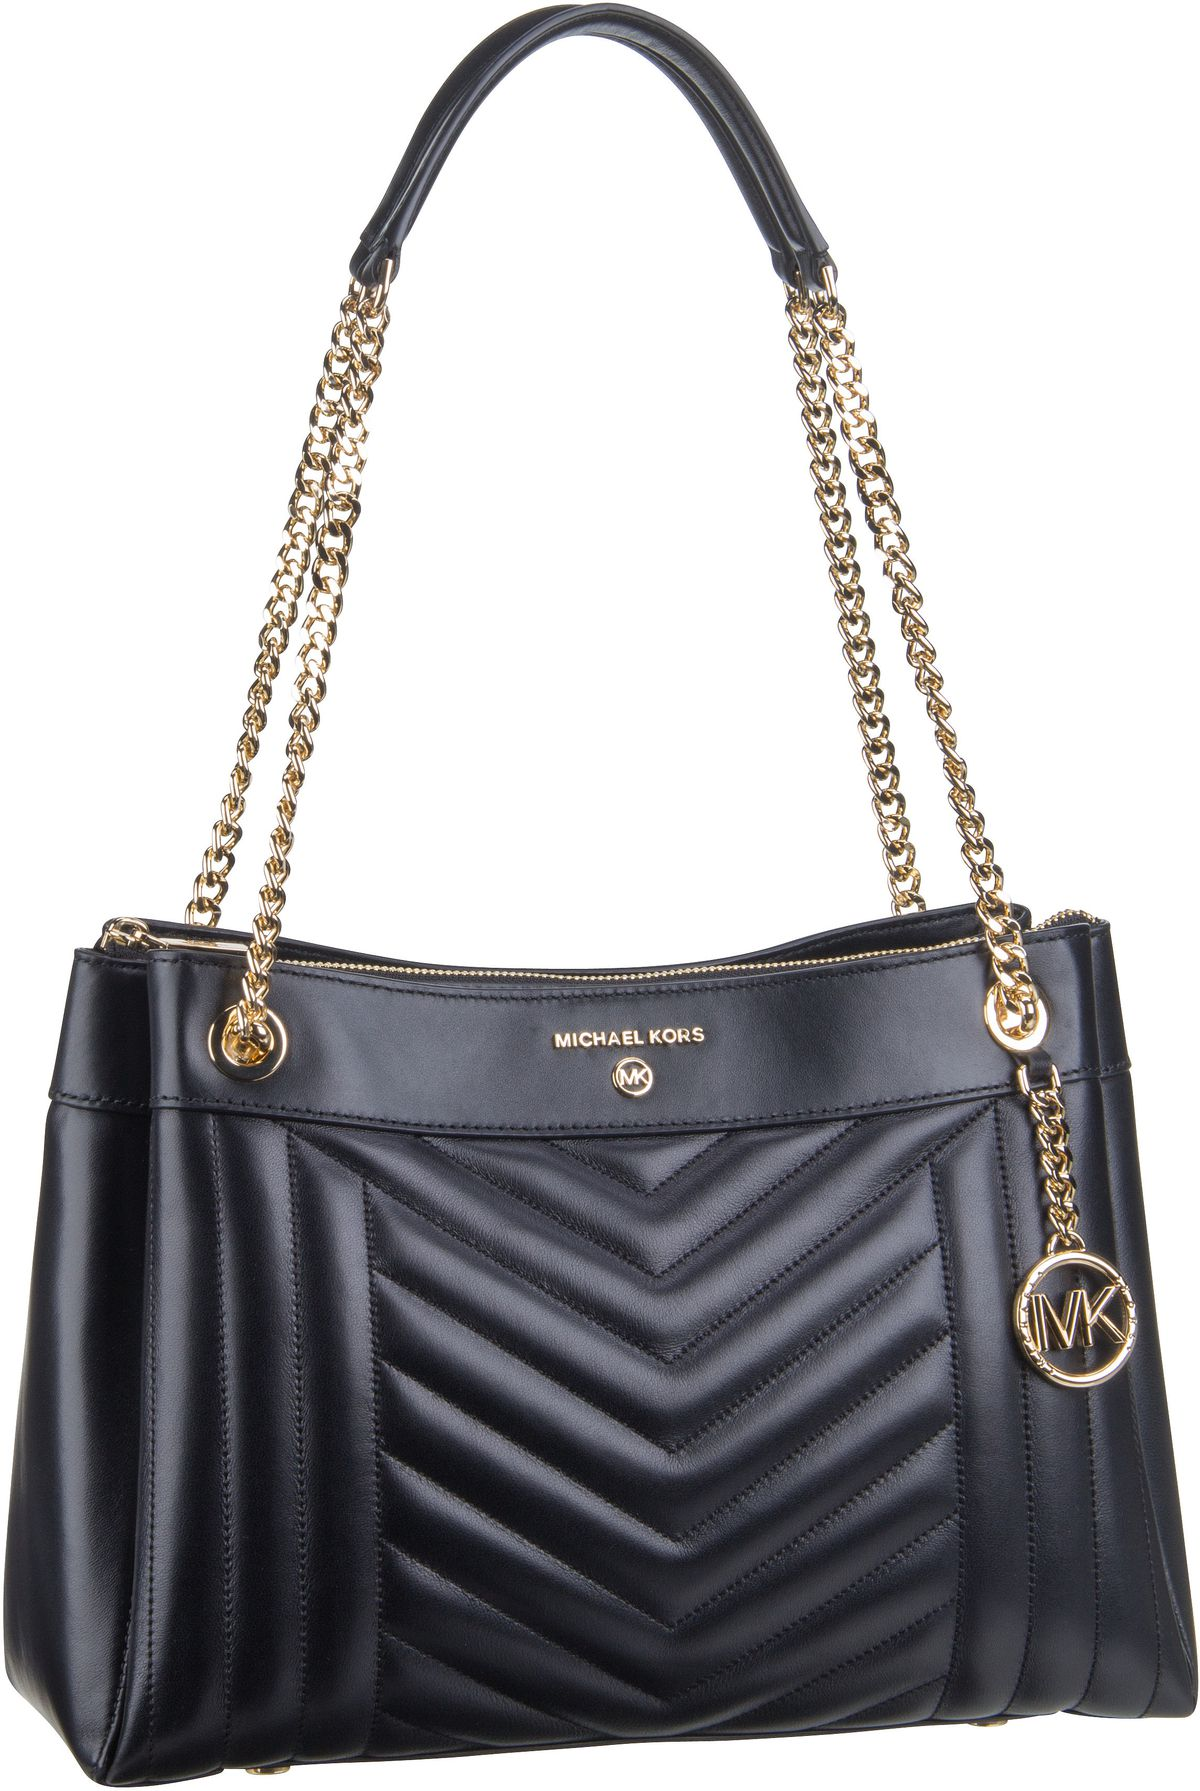 Michael Kors Handtasche Susan Medium Shoulder Black